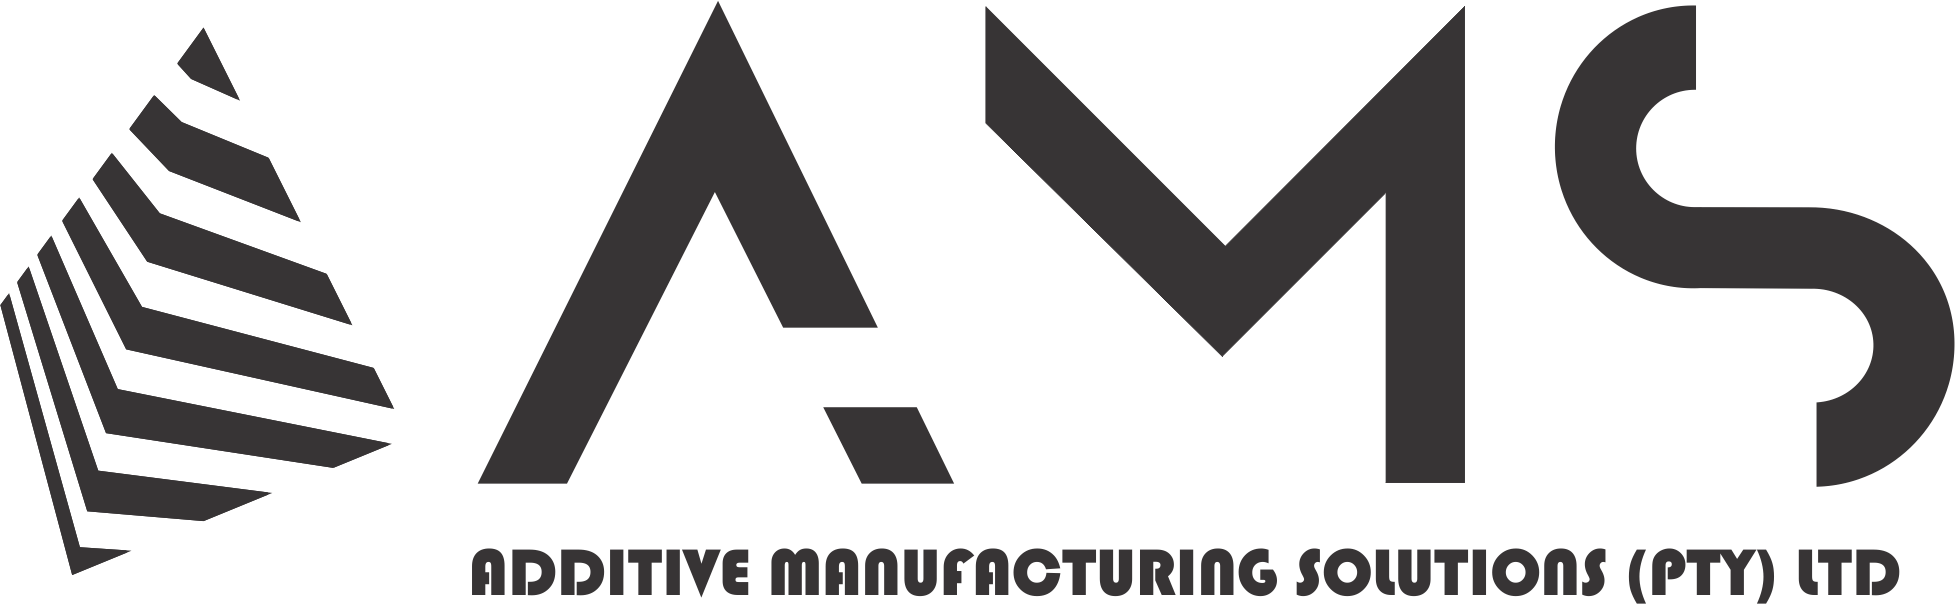 Additive Manufacturing Solutions